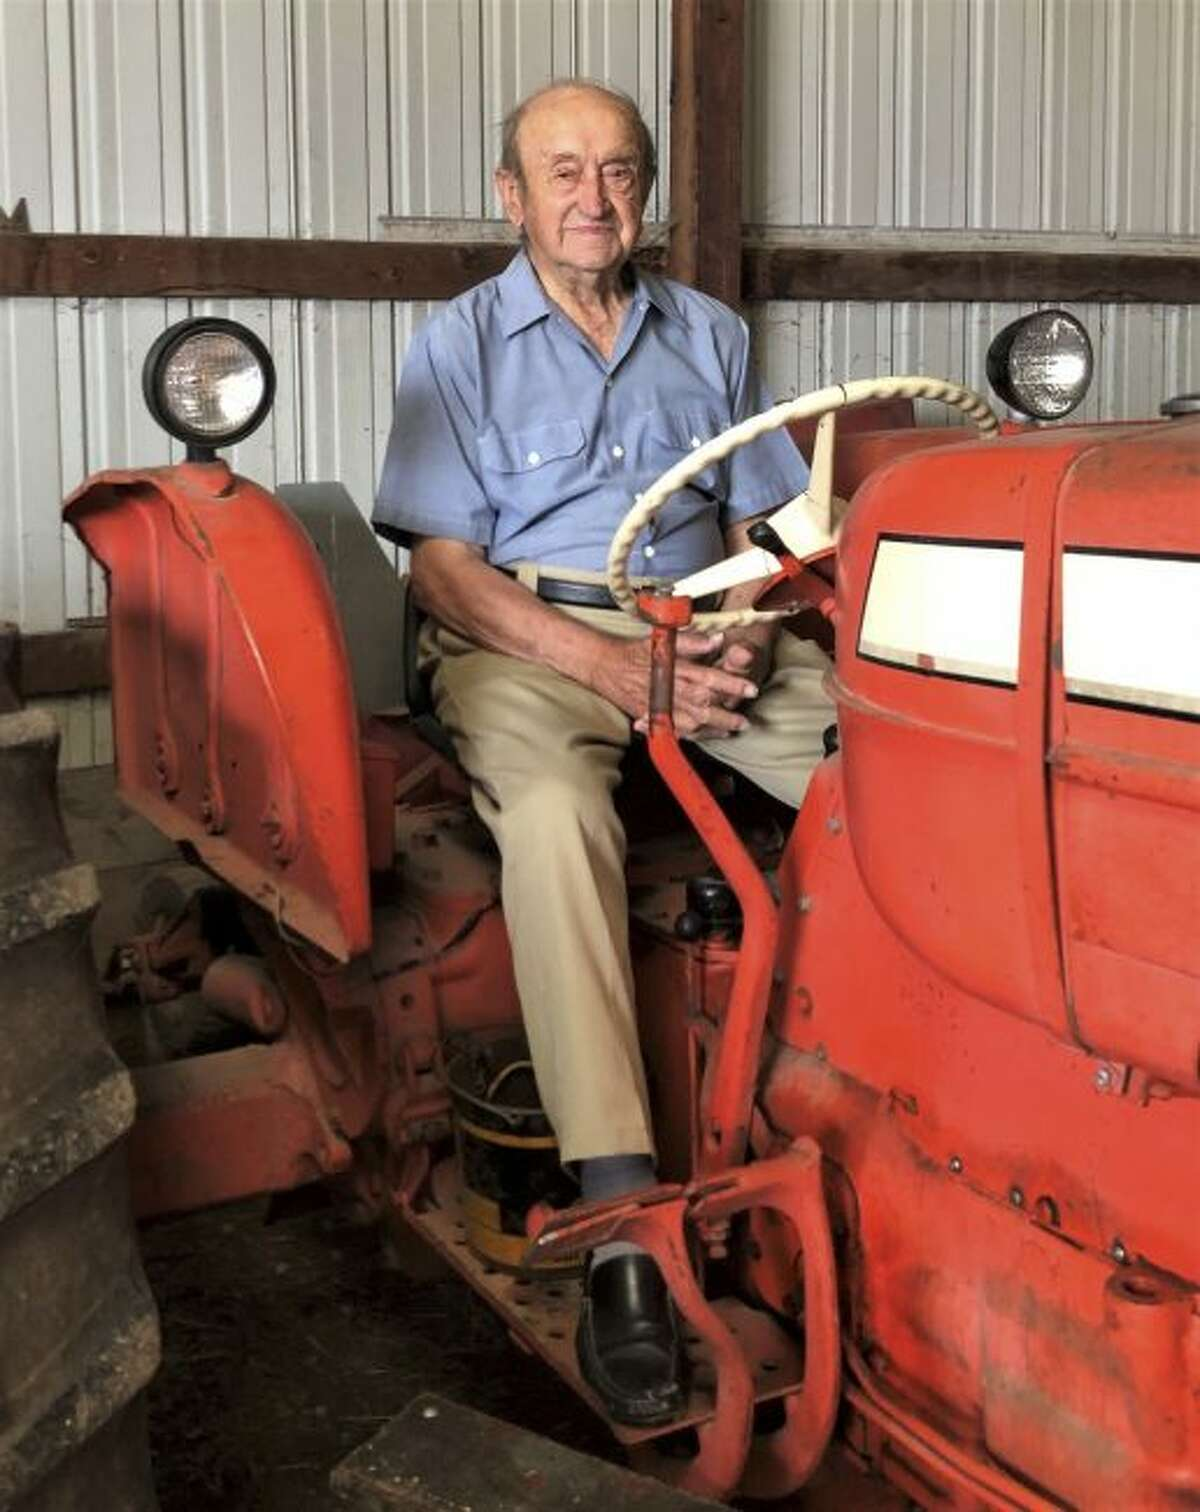 Farmer Leonard Sauer, sits on a red Allis-Chalmers tractor that is just one of the tractors Sauer still uses to bale hay, cut grass and more in Kellnersville, Wis., Tuesday, July 16, 2019. Sauer still drives tractors at his Village View Dairy Farm in Kellnersville. In just a few weeks, he will turn 100. (Maddy McTigue/Herald-Times Reporter via AP)